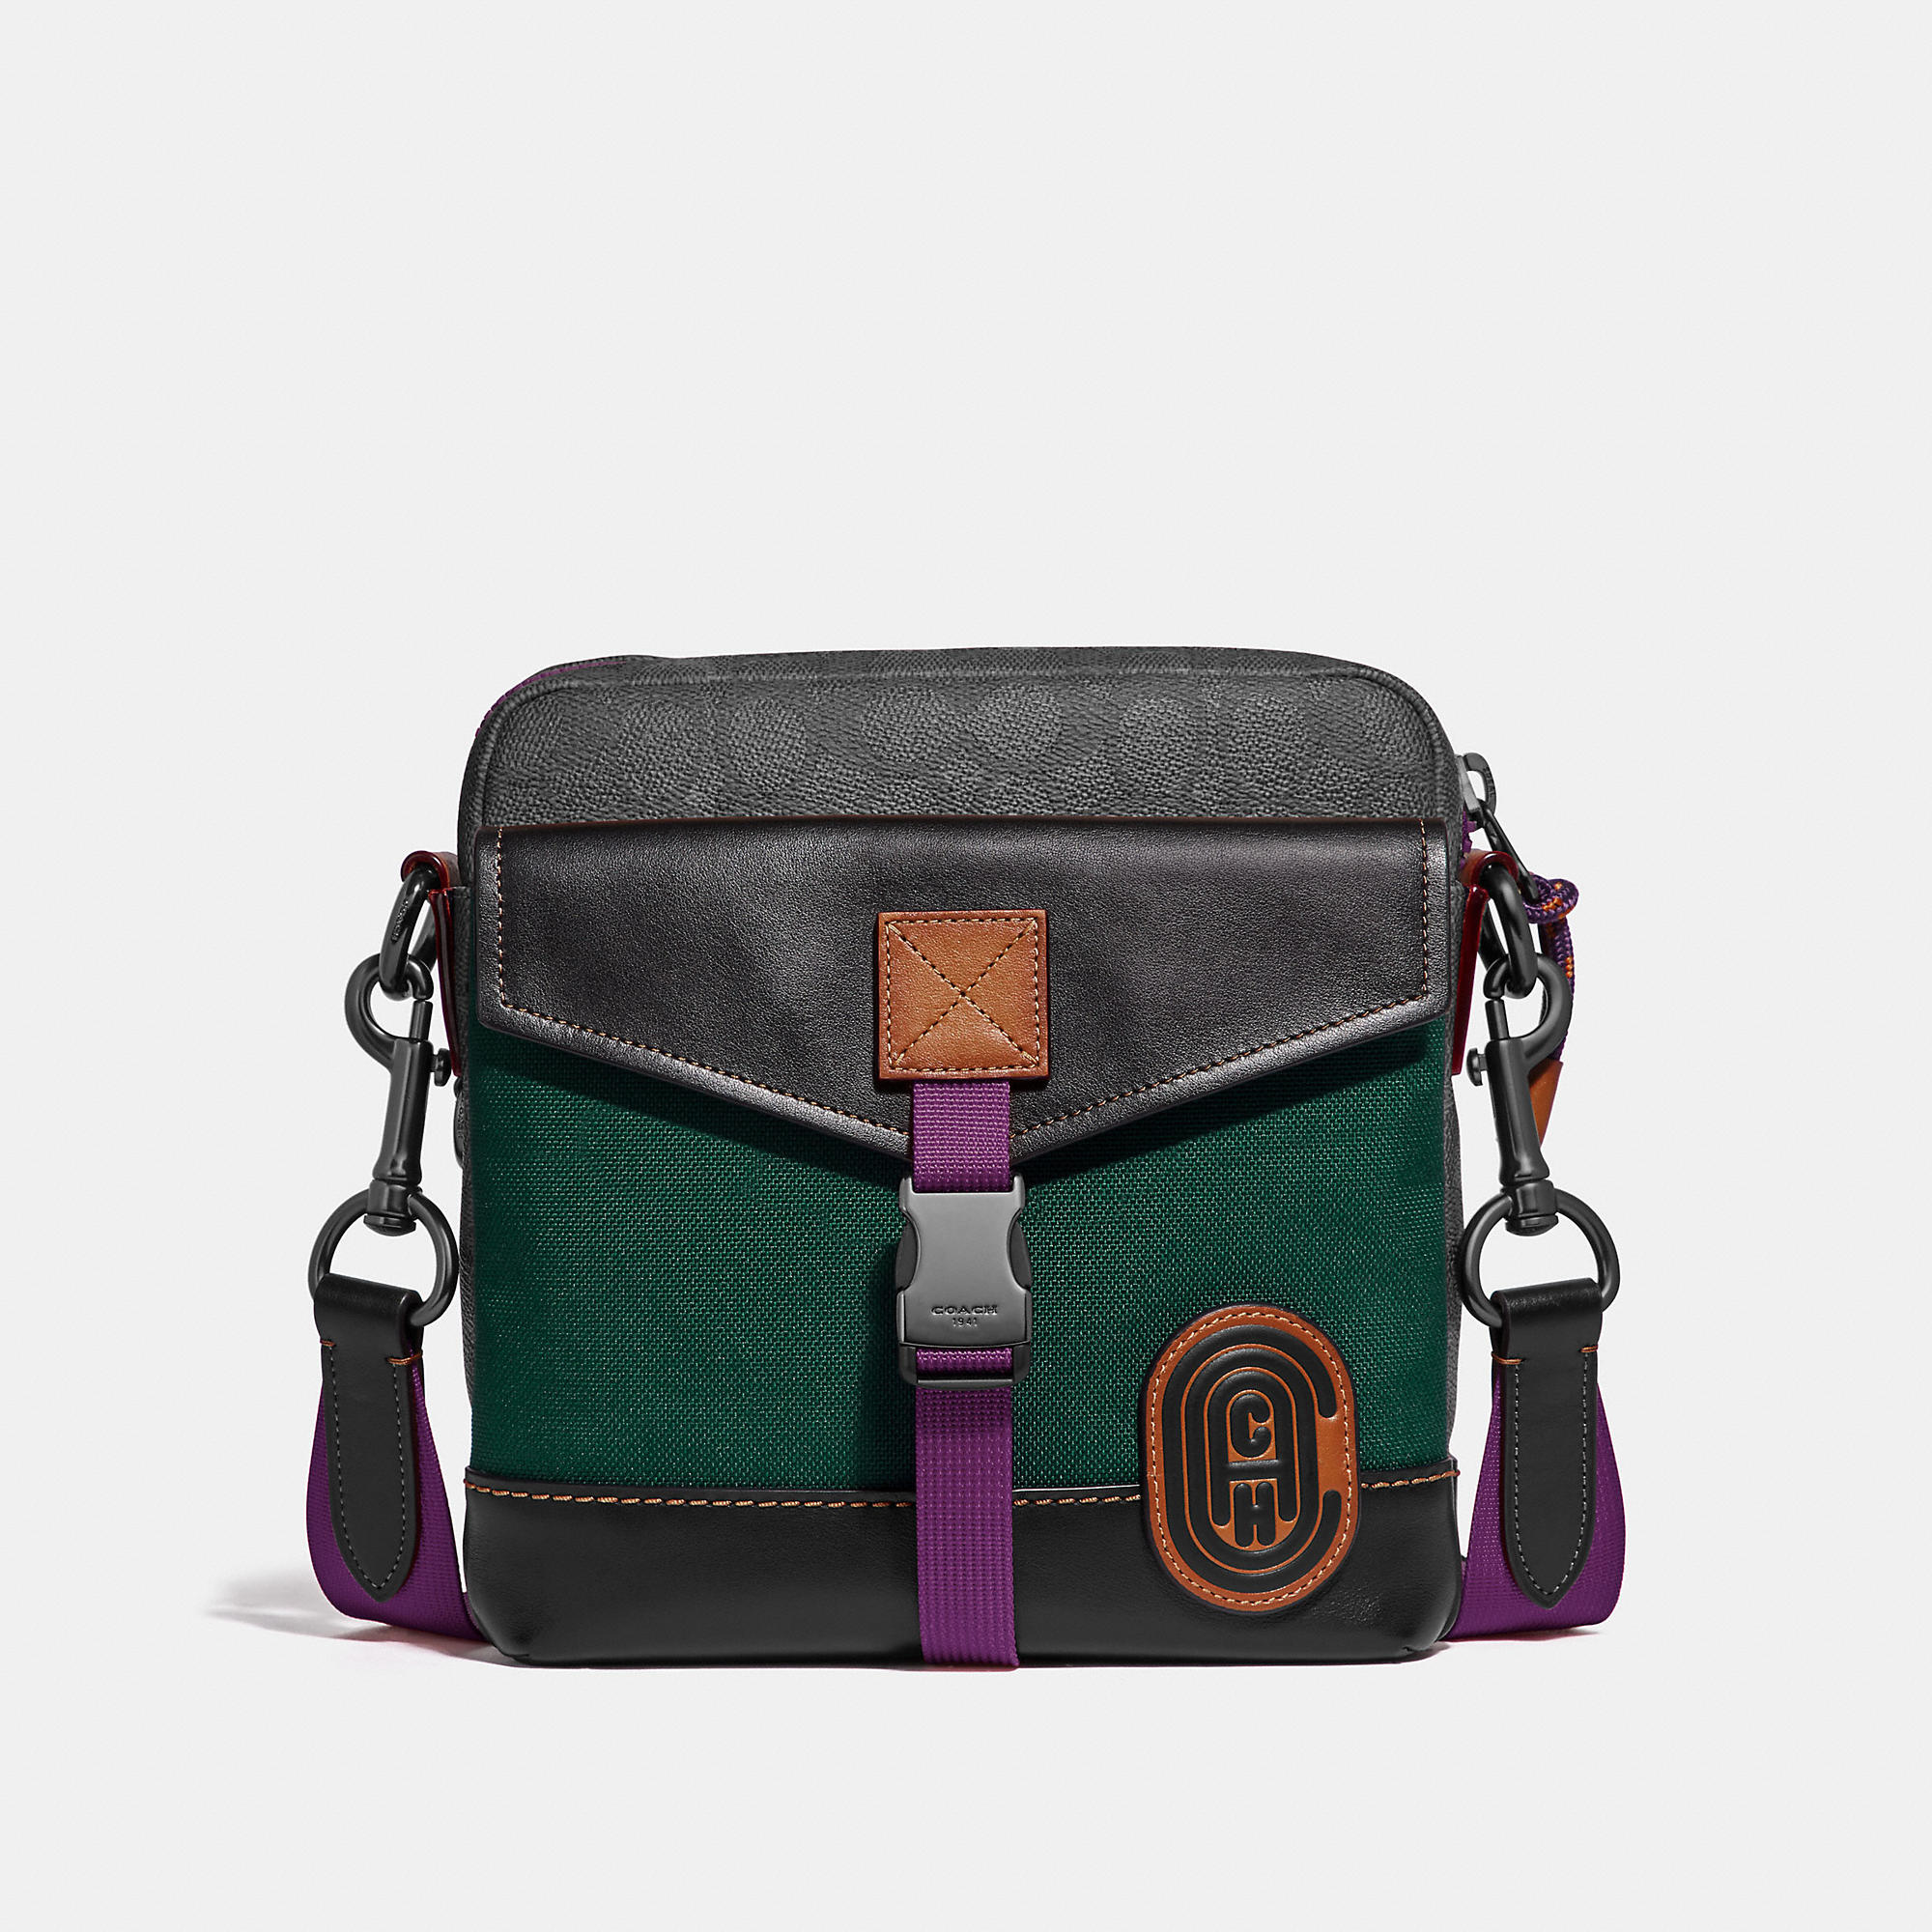 4b6d7d274859 Coach Crossbody In Signature Canvas With Patch - Men's In Charcoal/Black  Copper